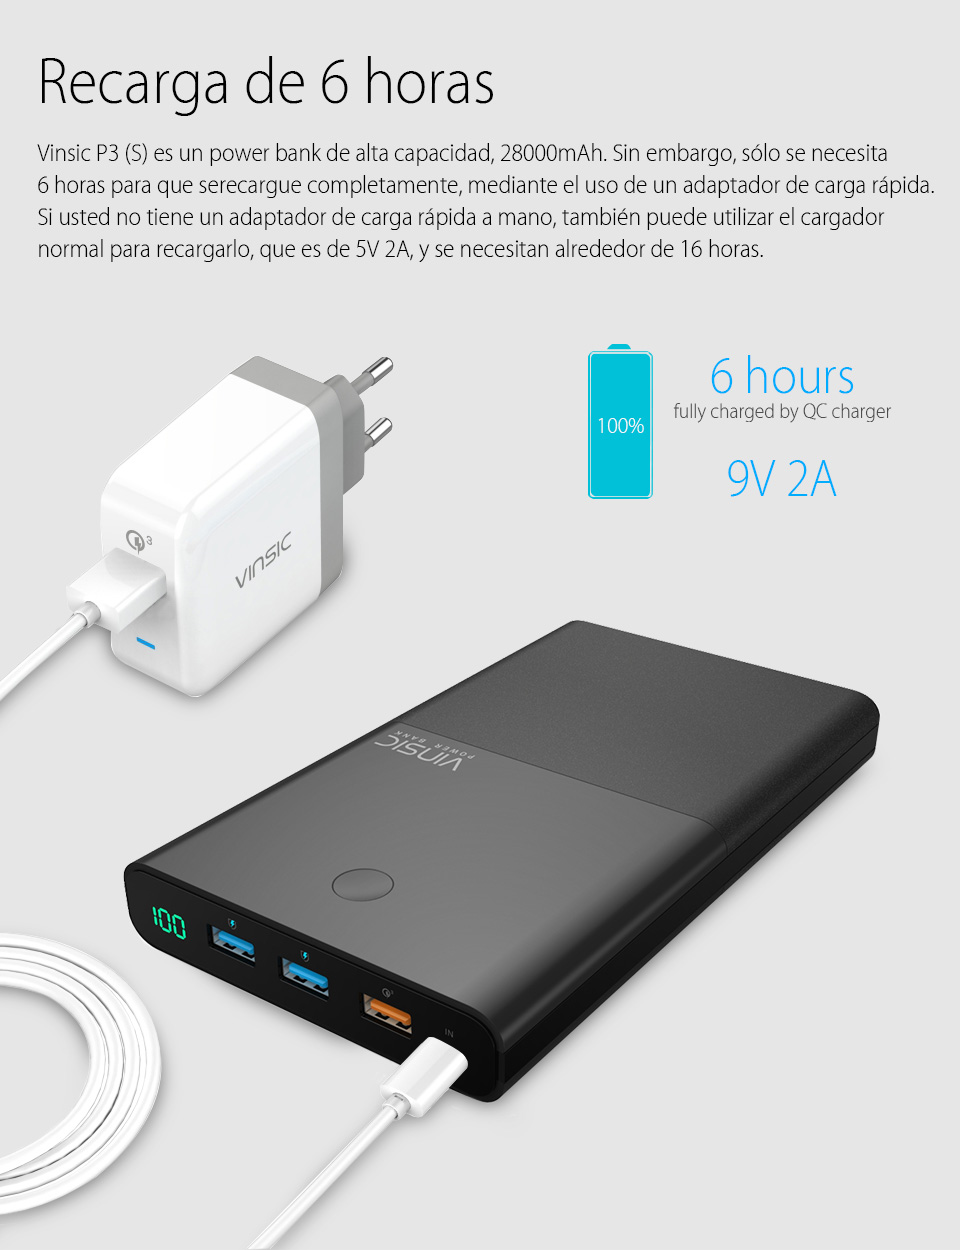 Vinsic Terminator P3(S) 28000mAh Power Bank 18650 QC3.0 Quick Charge 3 USB External Backup Battery for Samsung Xiaomi Tablet PC